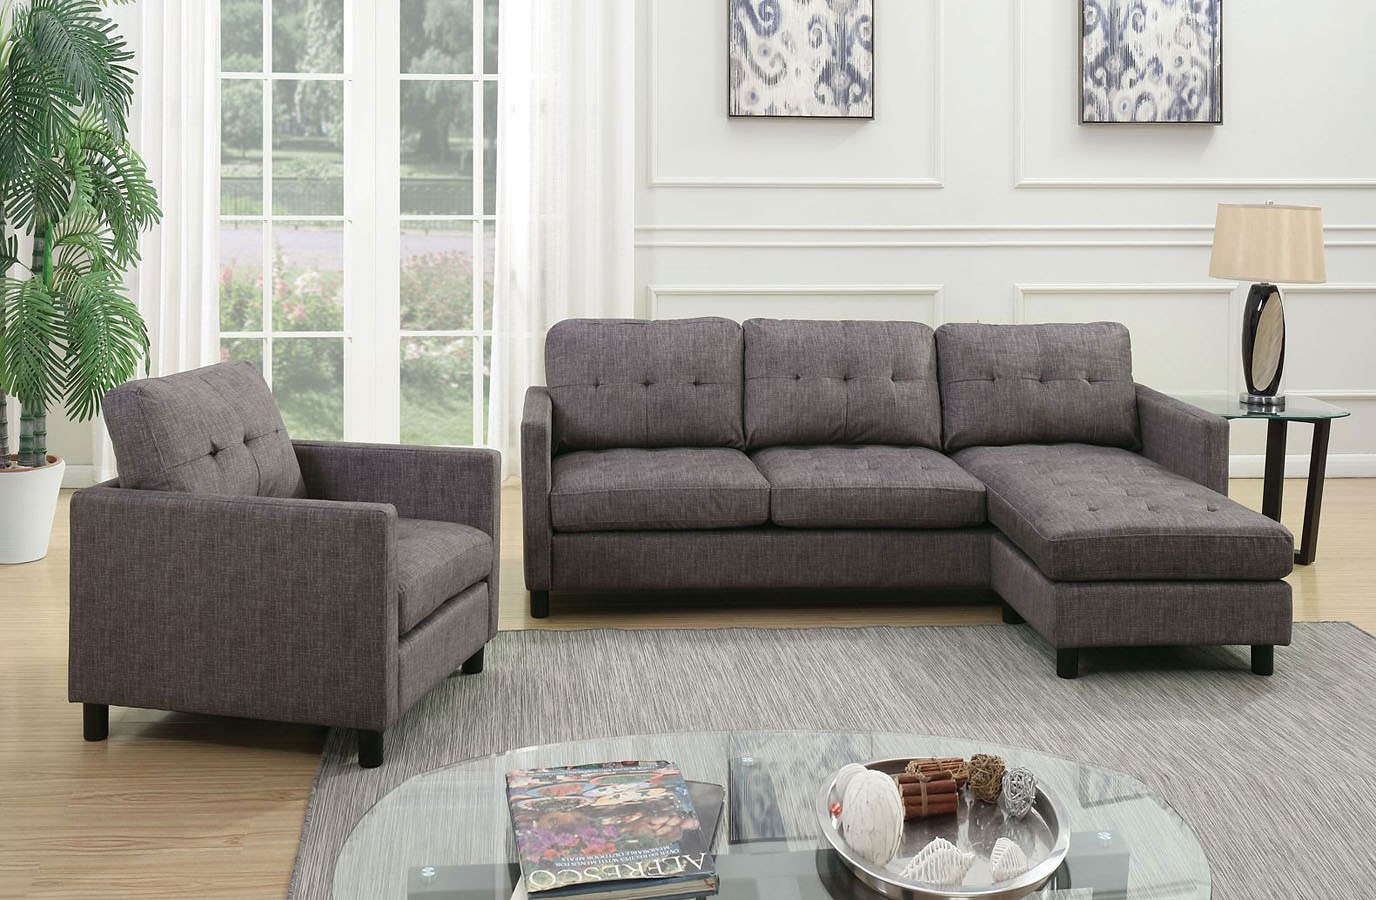 Caesar 3 Piece Living Room Set throughout 12 Awesome Concepts of How to Improve Living Room Set 3 Piece